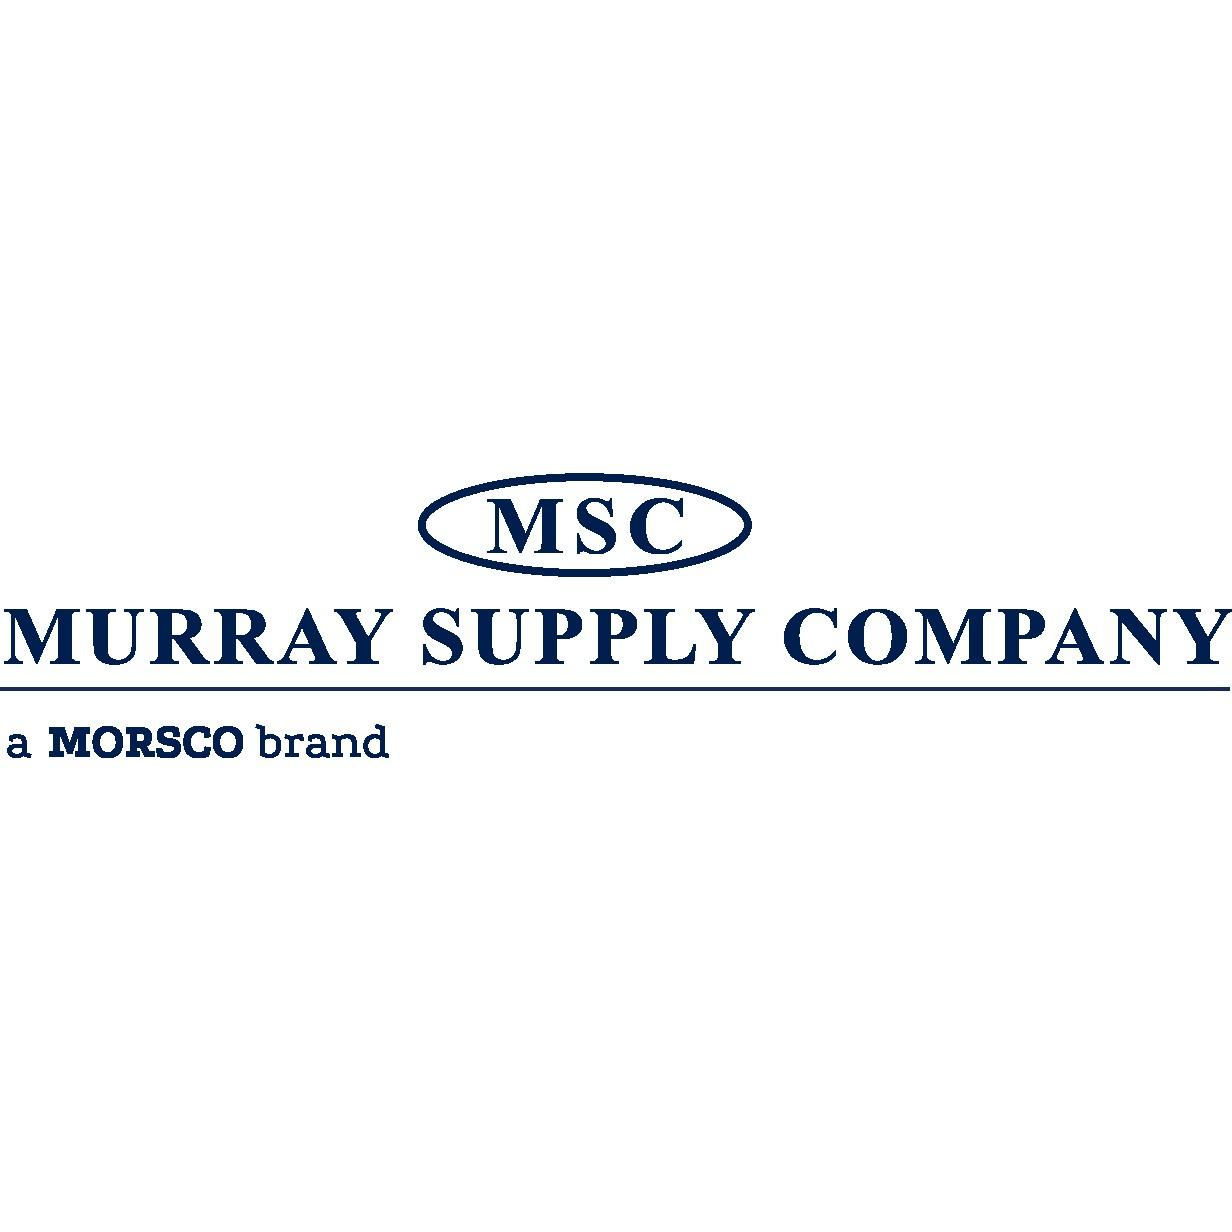 Murray Supply